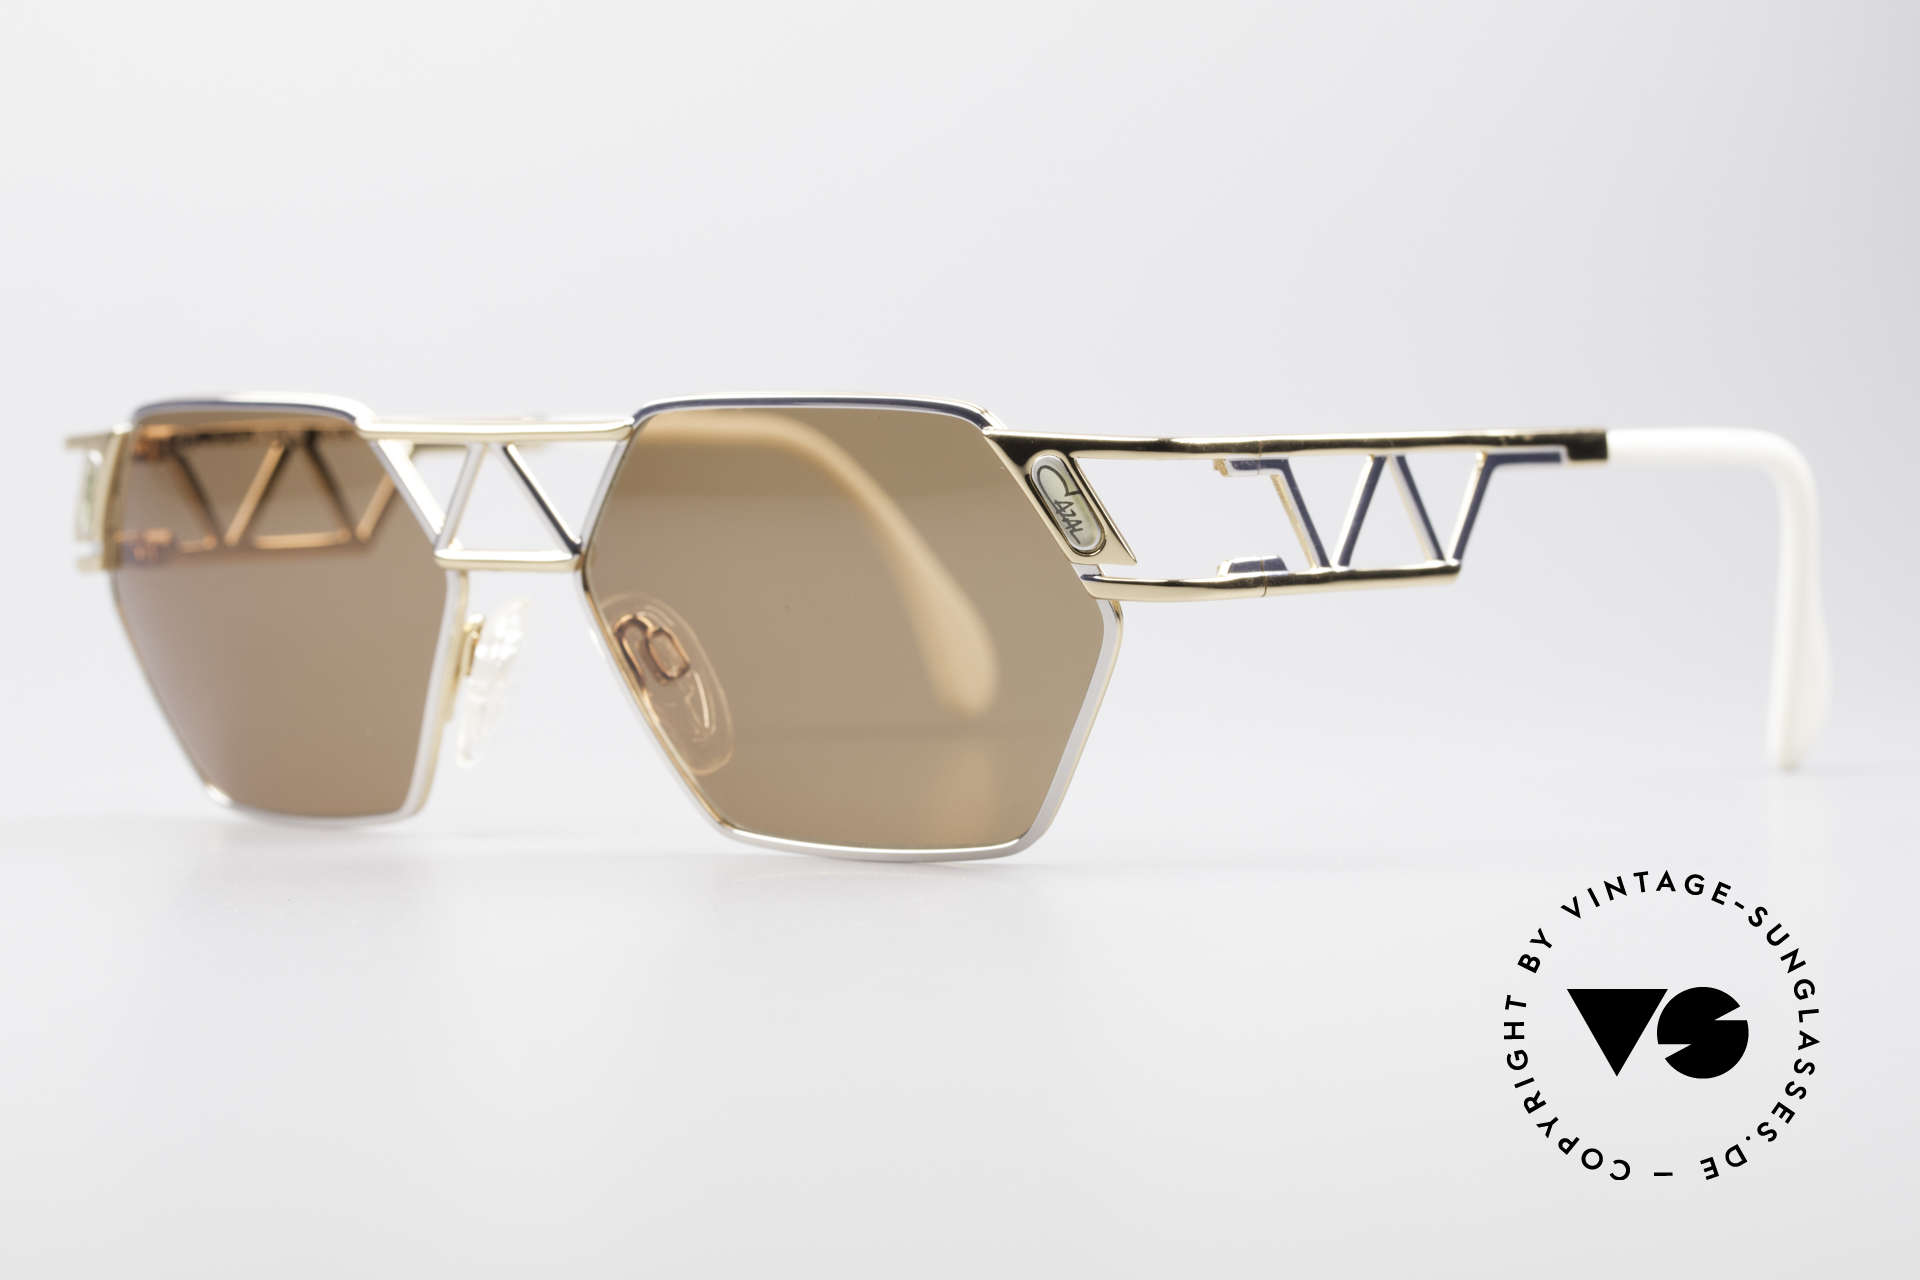 Cazal 960 90's Designer Sunglasses, tangible superior crafting quality (made in Germany), Made for Men and Women